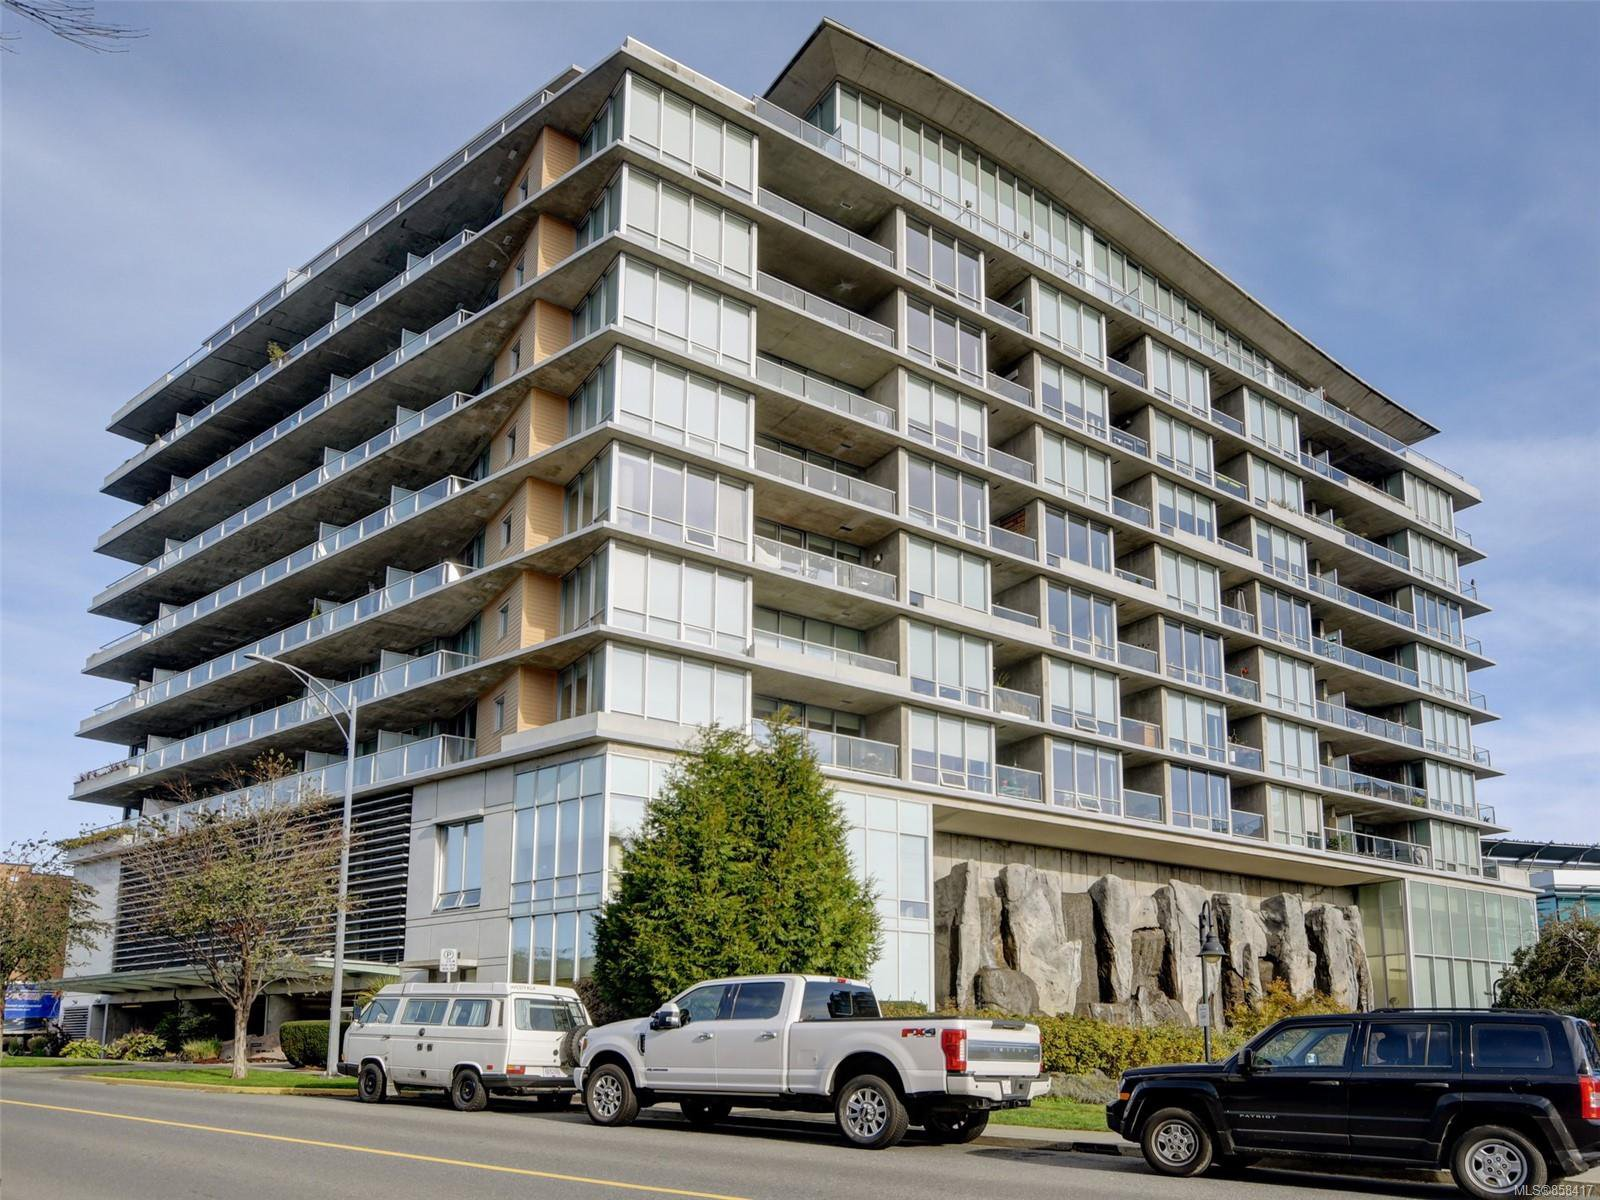 Main Photo: 801 160 Wilson St in : VW Victoria West Condo for sale (Victoria West)  : MLS®# 858417